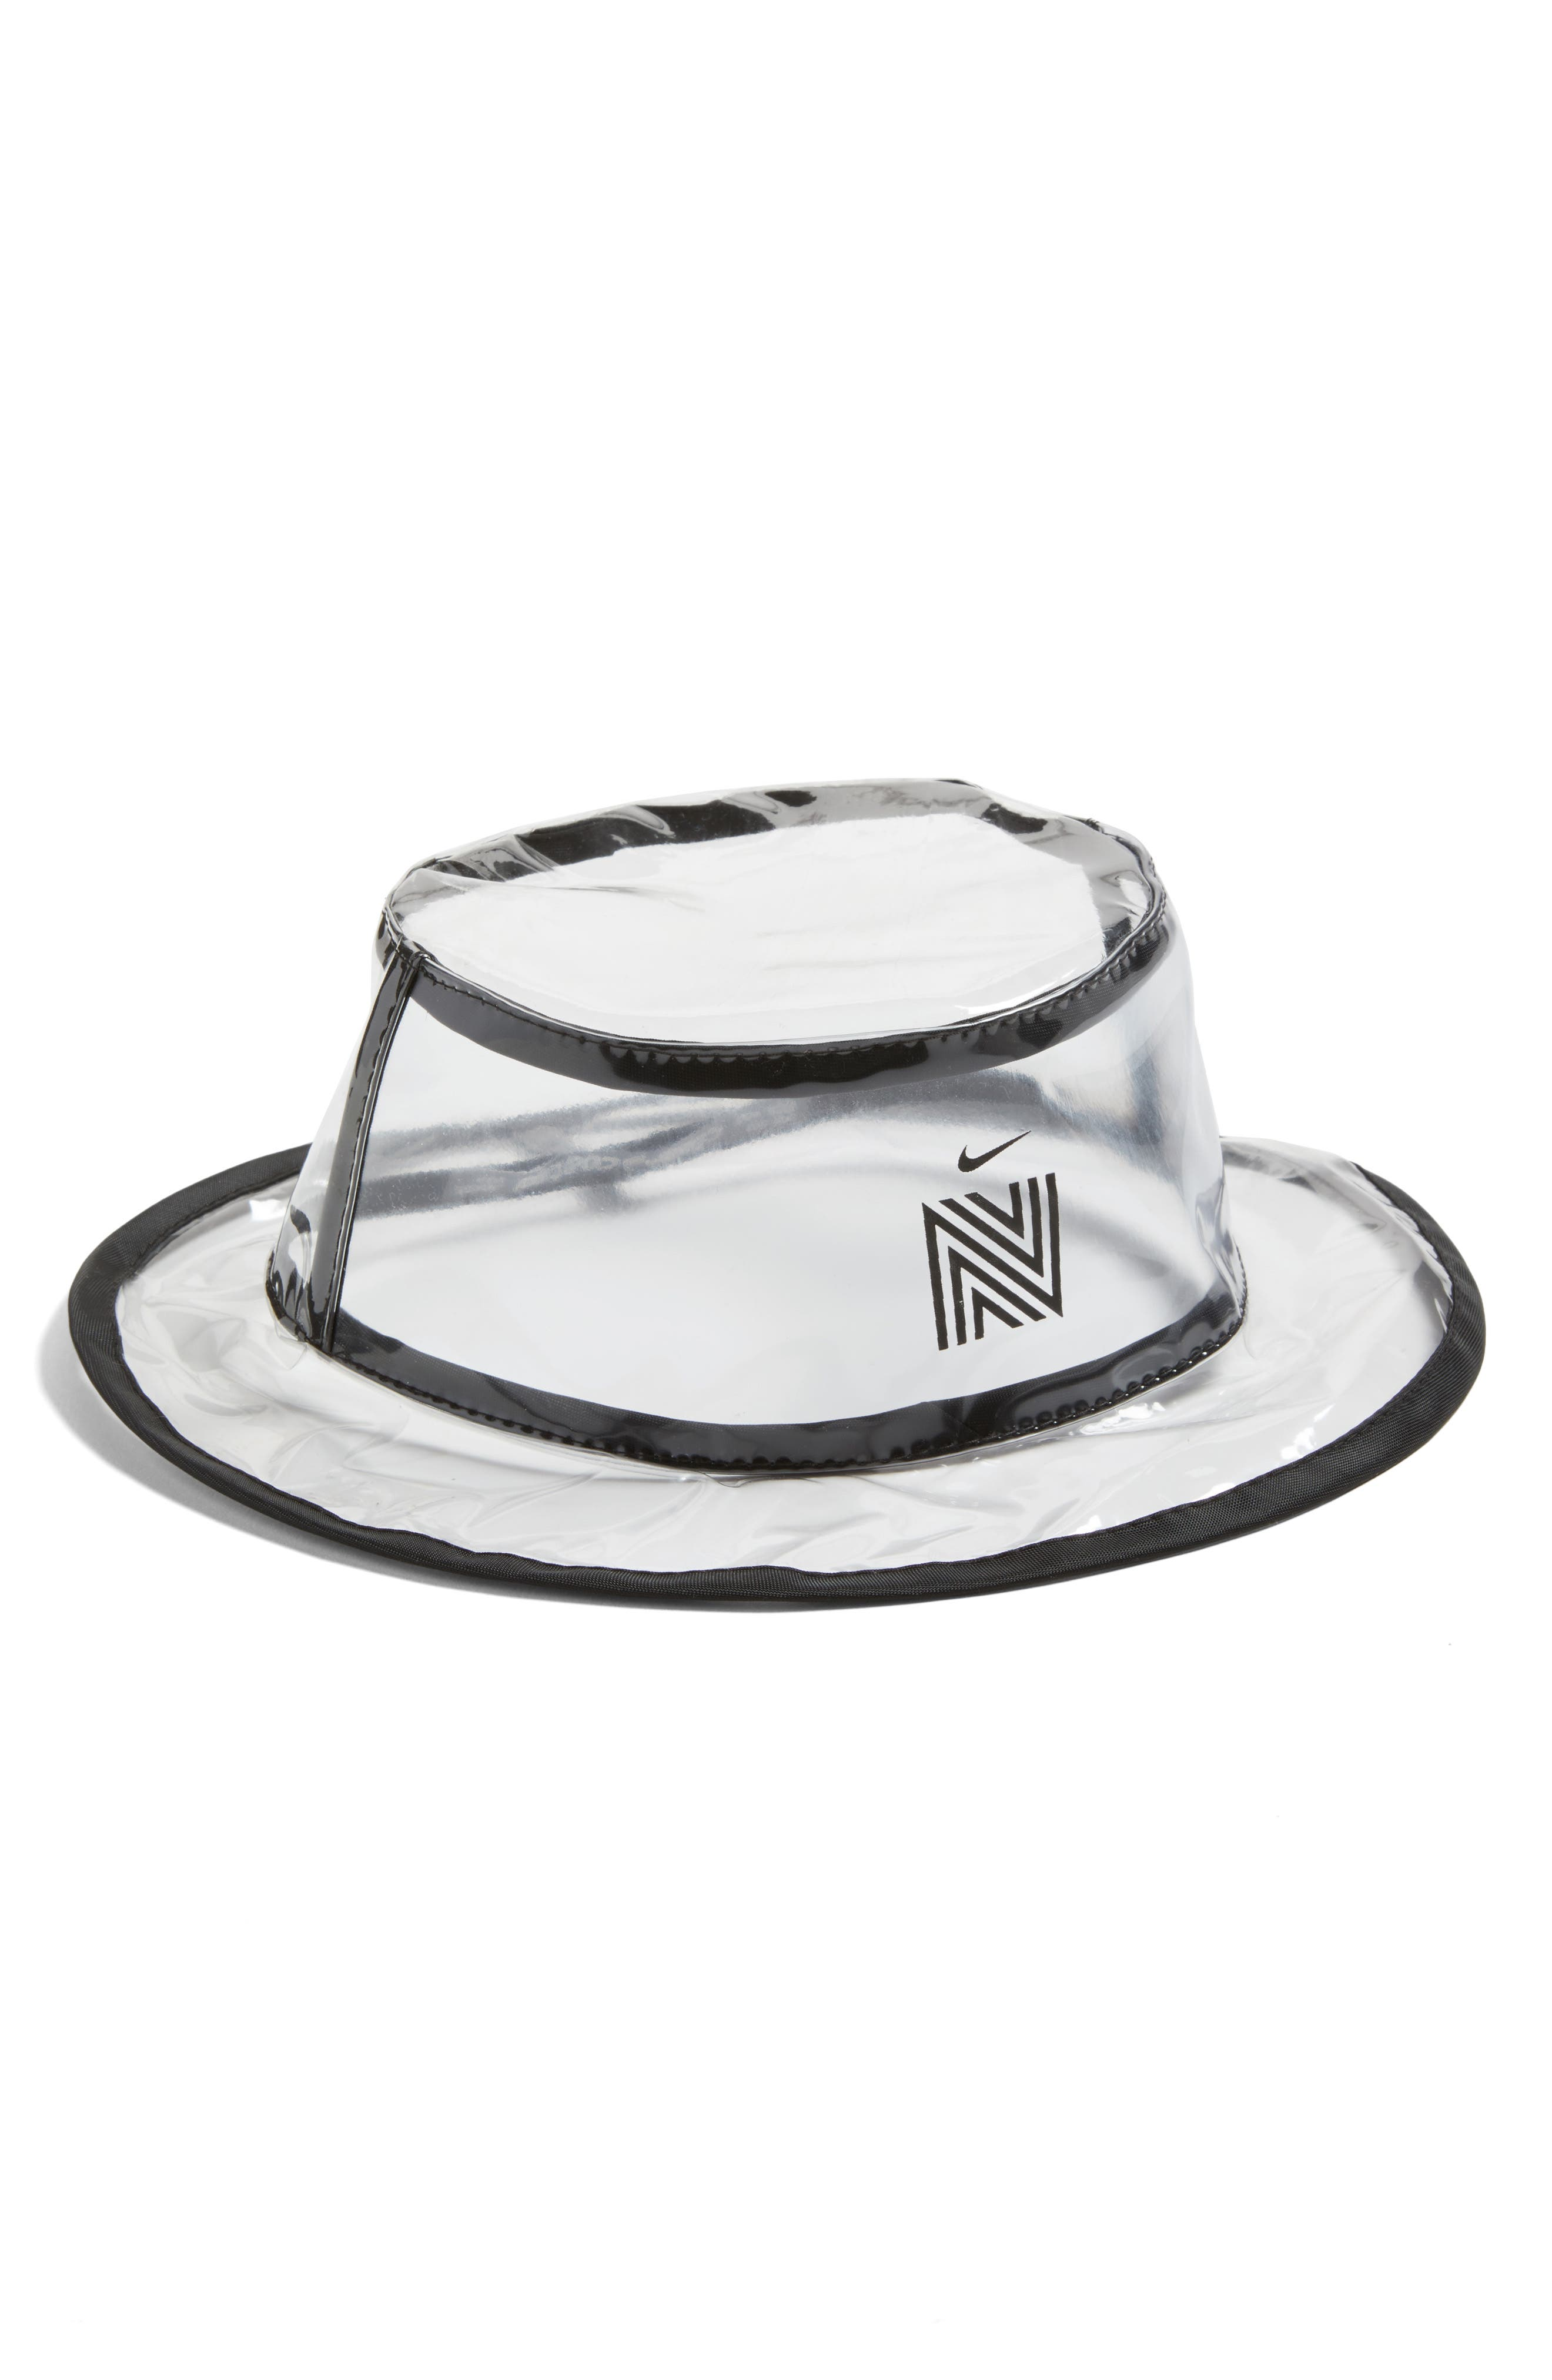 Clear Coated Nordstrom x Nike Translucent Bucket Rain Hat,                             Main thumbnail 1, color,                             960